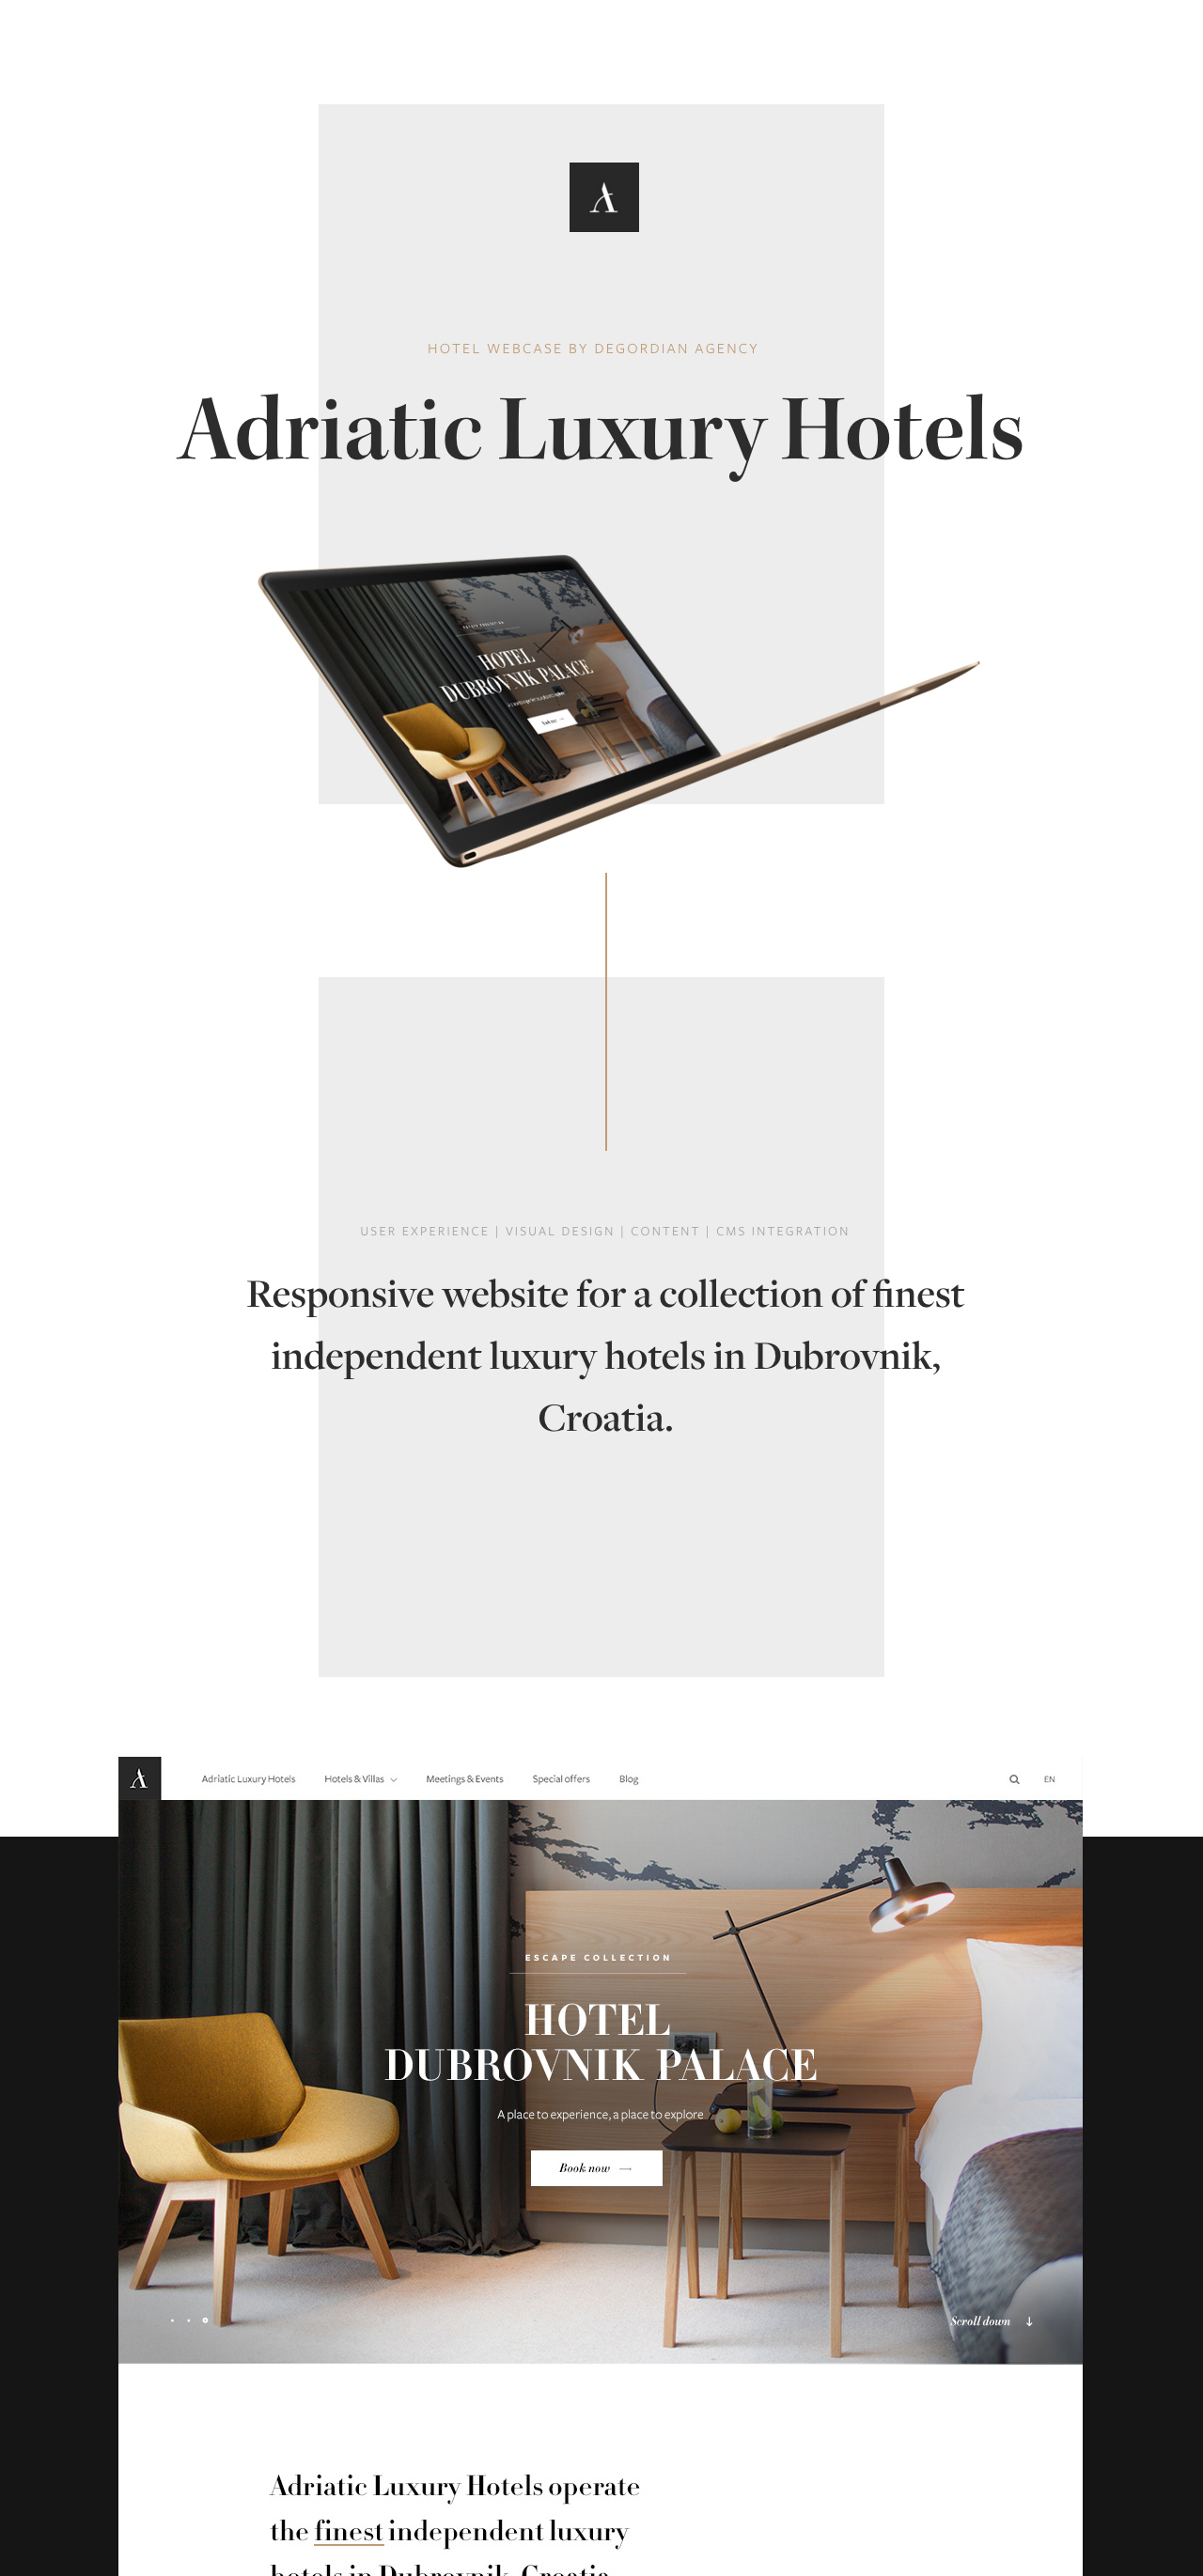 Adriatic Luxury Hotels Case Study Website Screenshot